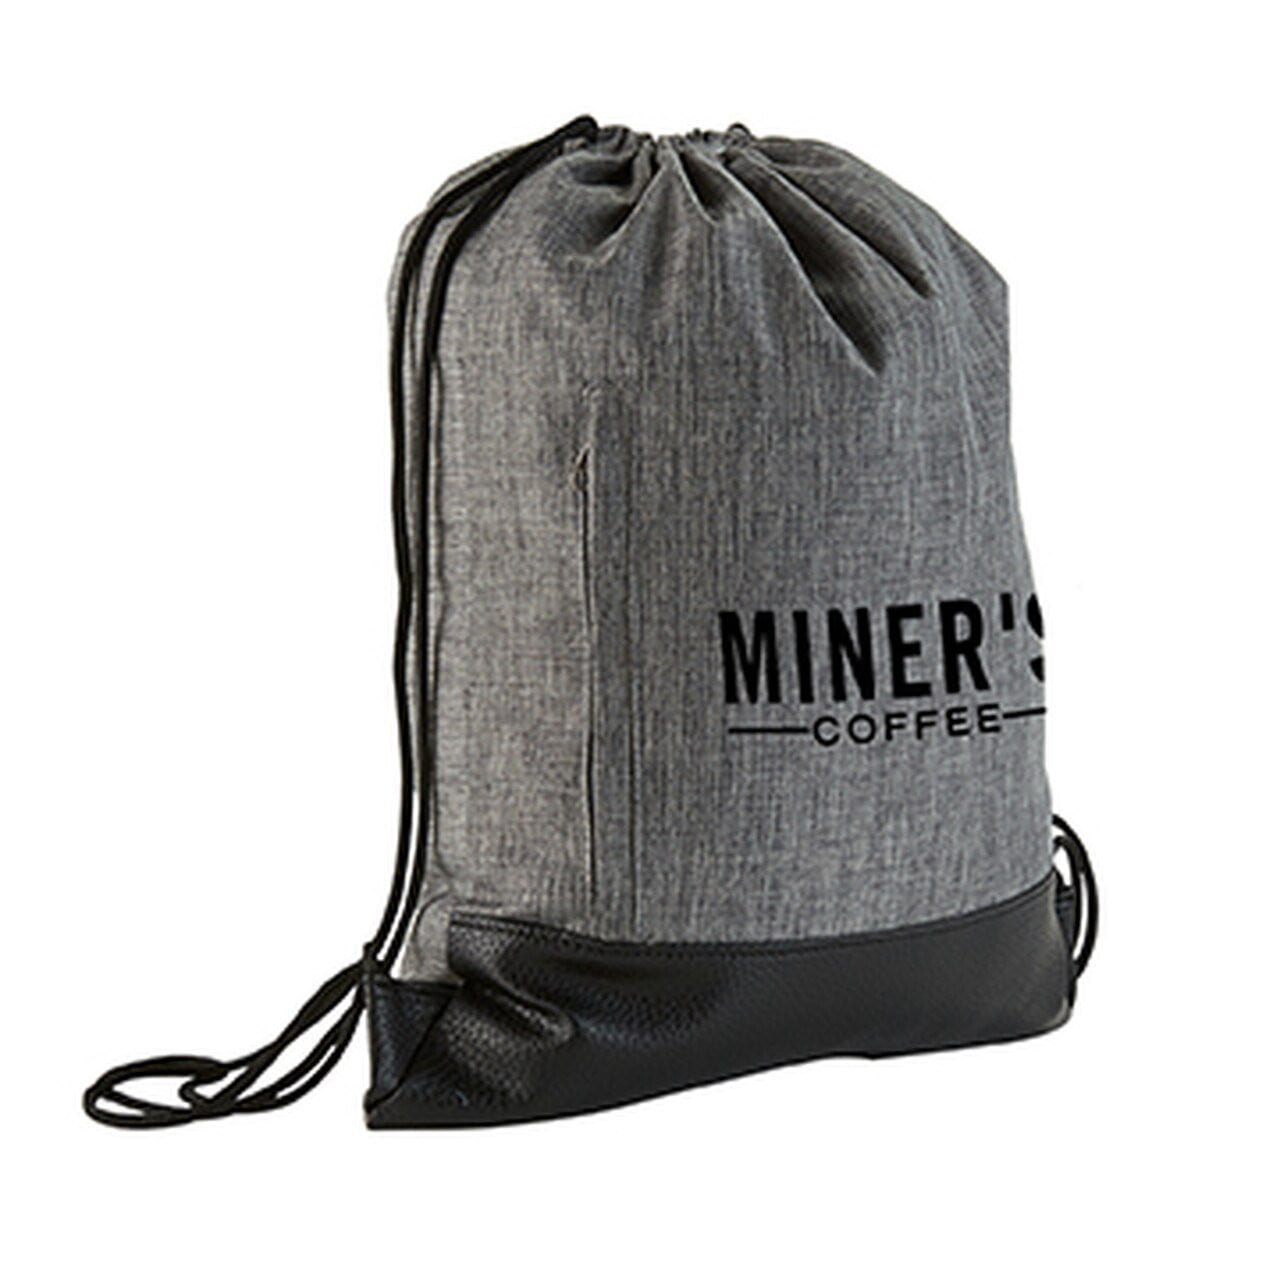 heathered-drawstring-backpack-Grey-Oasispromos